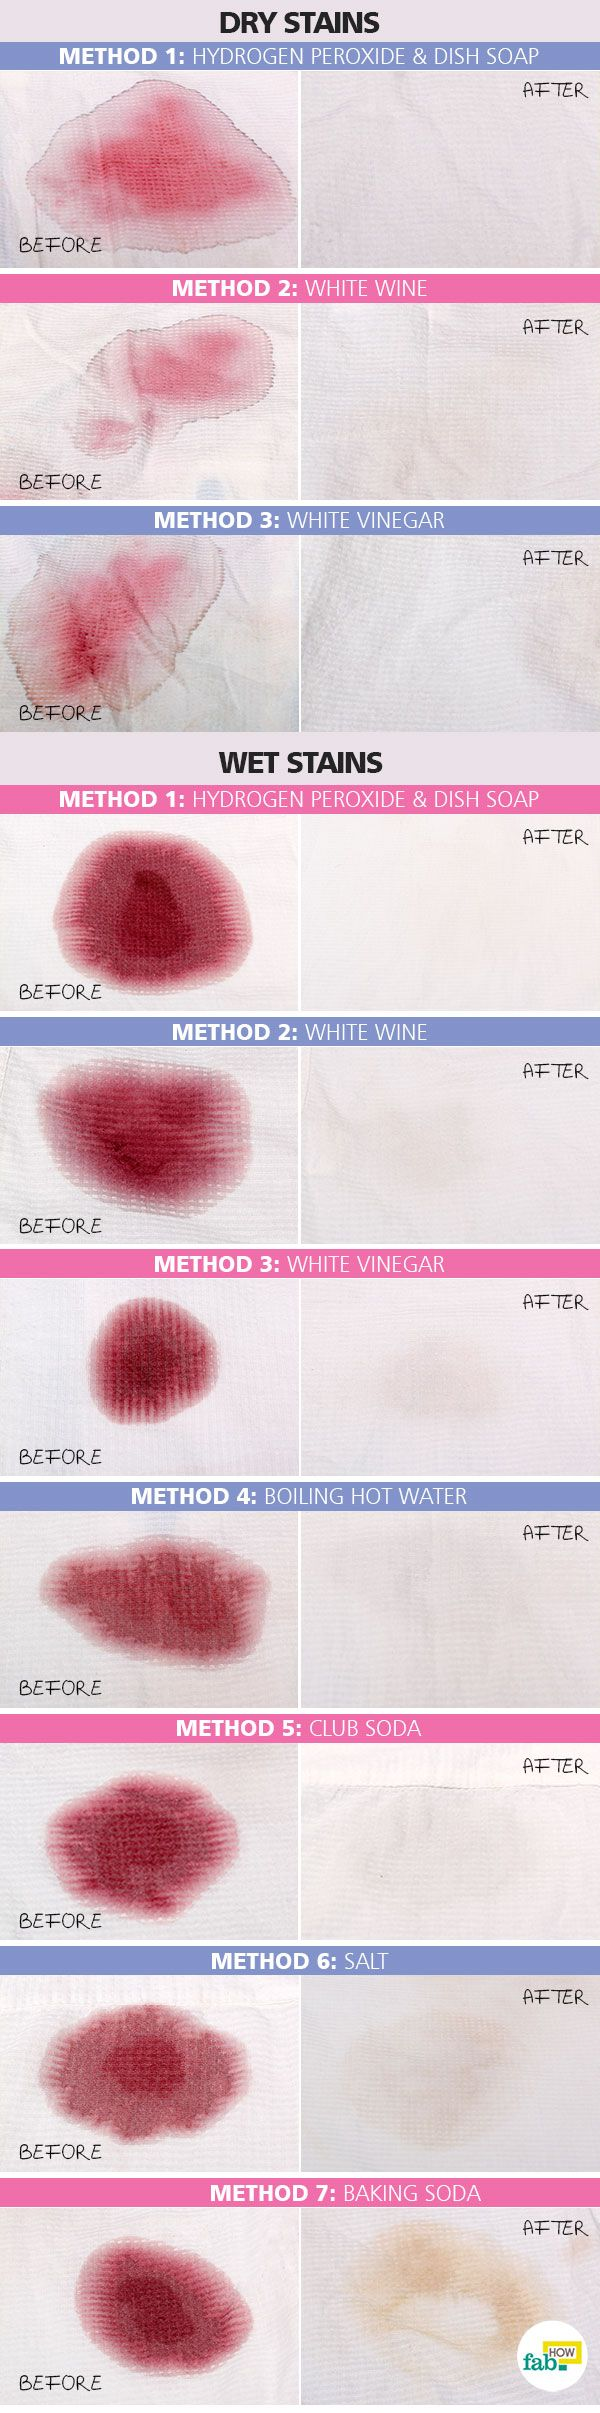 How To Remove Red Wine Stains From Clothes We Tested 7 Methods